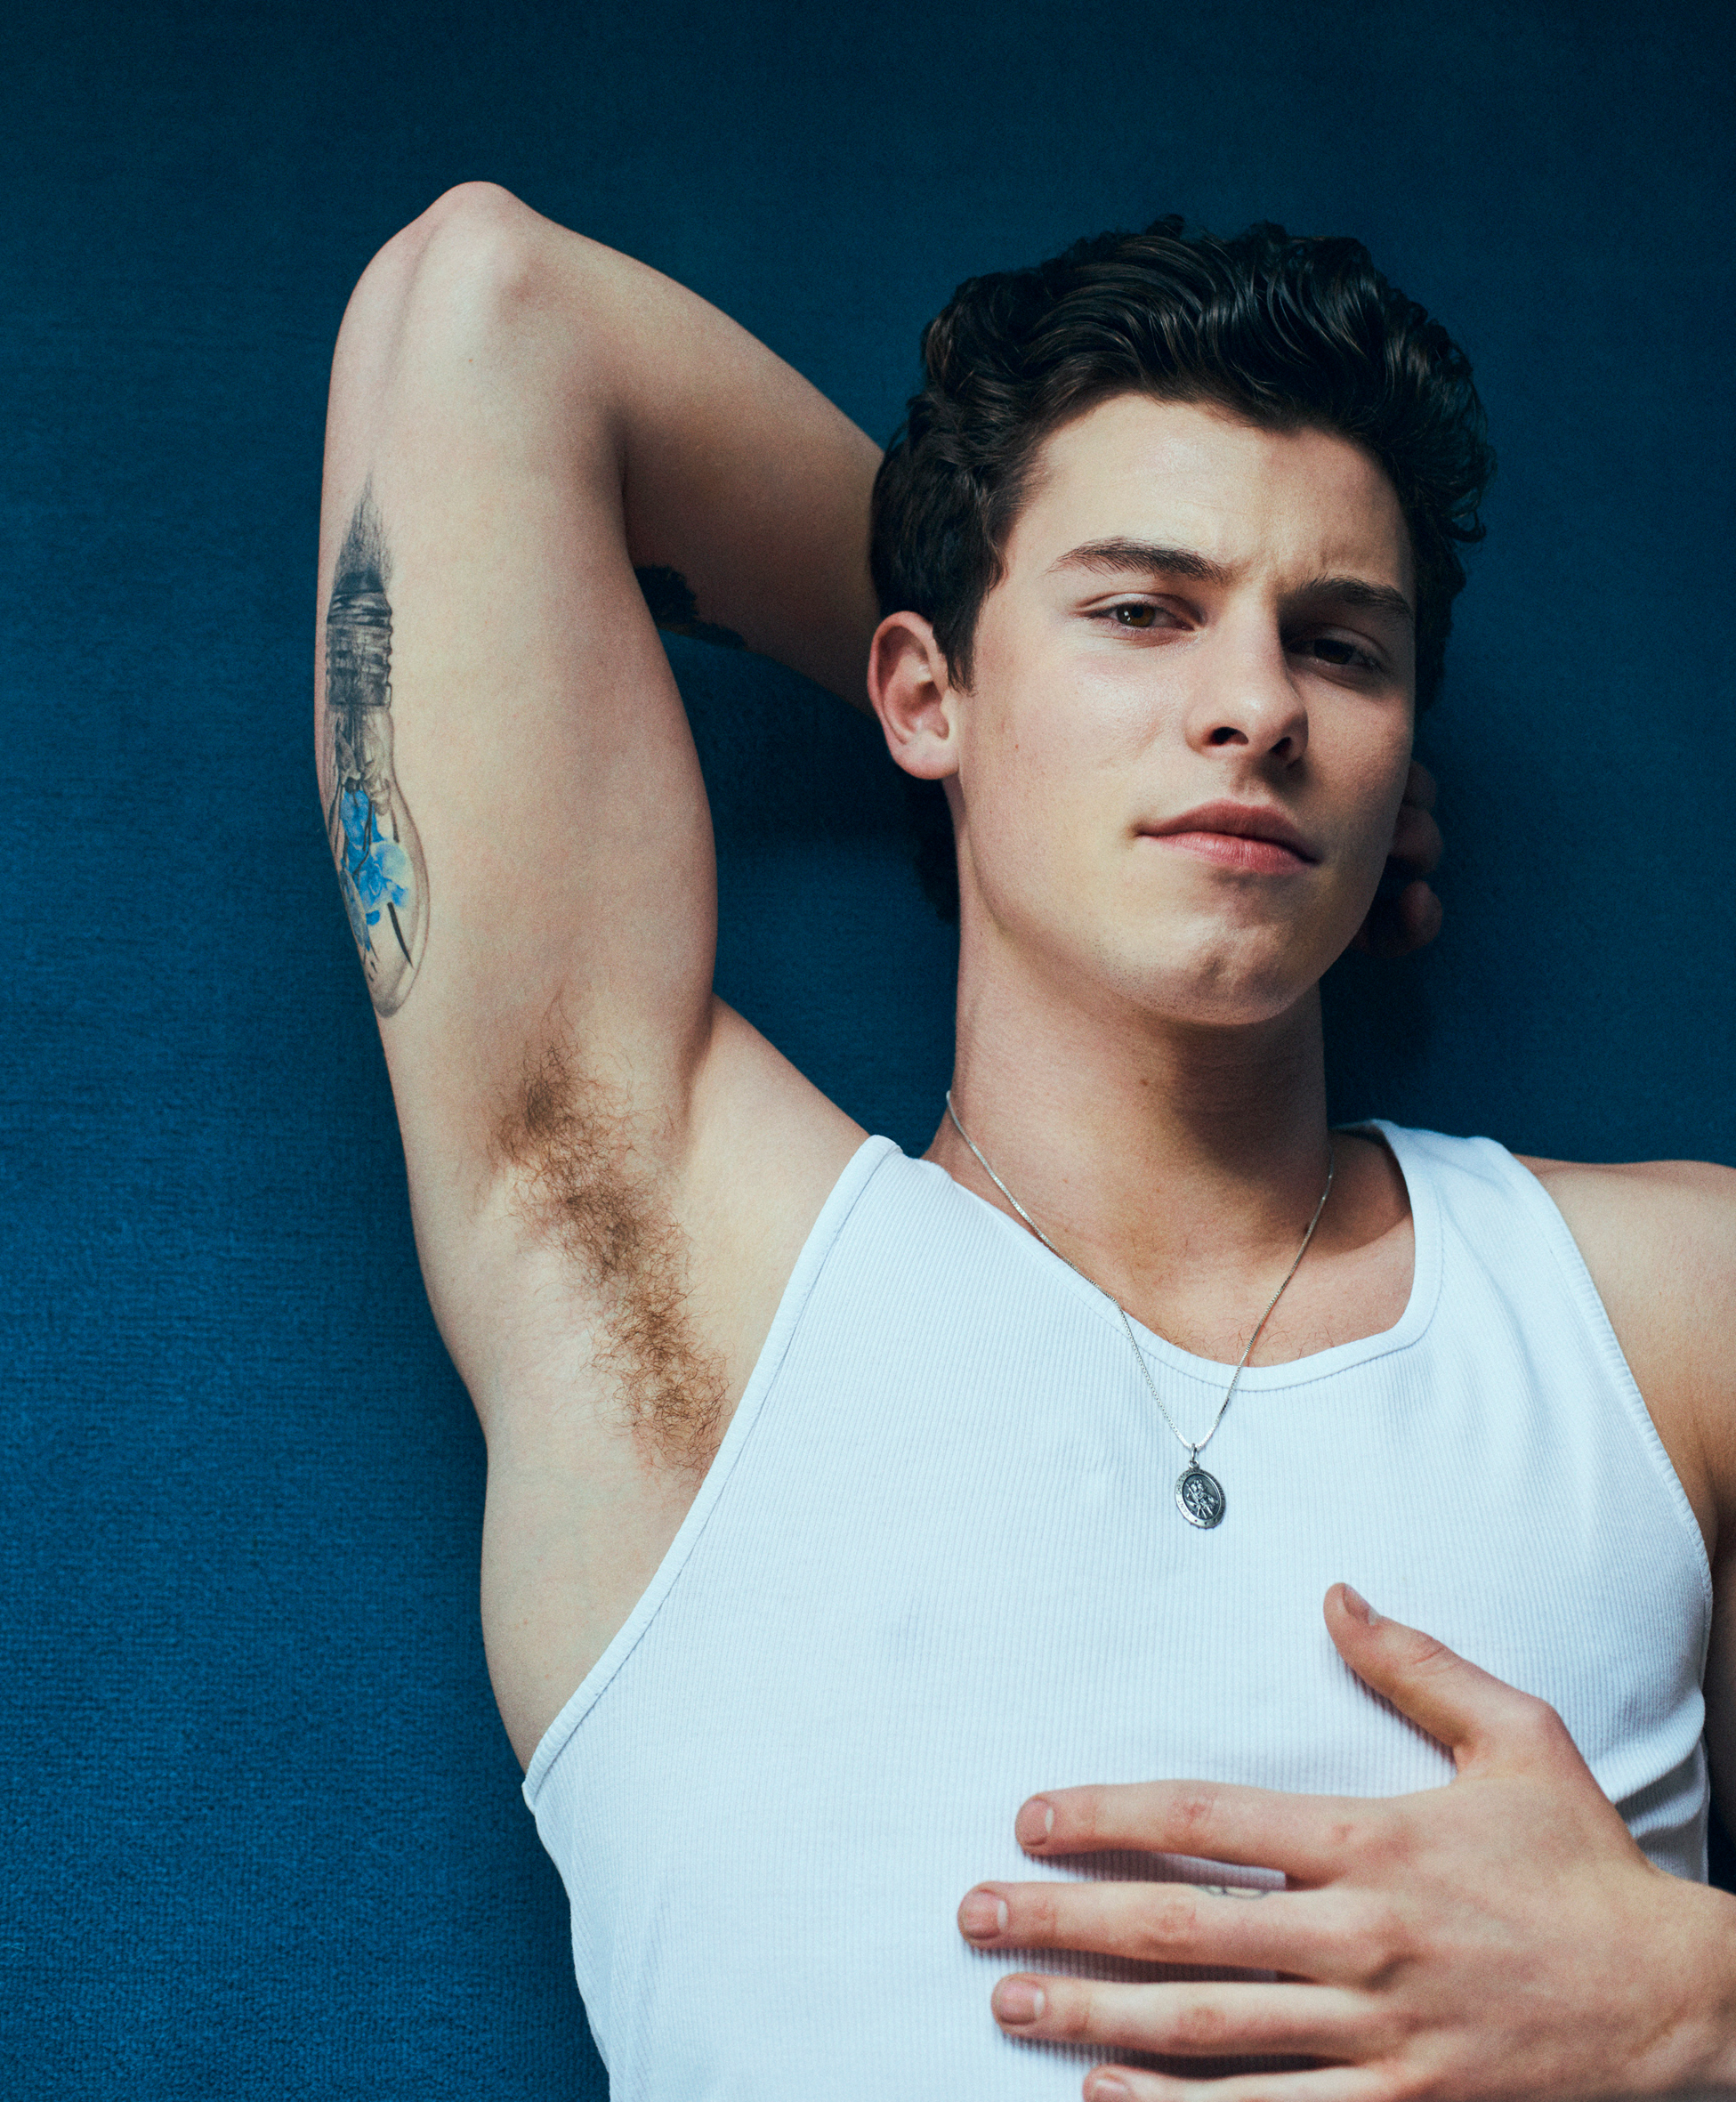 Whod You Rather Finger Nick Jonas Vs Shawn Mendes-2988